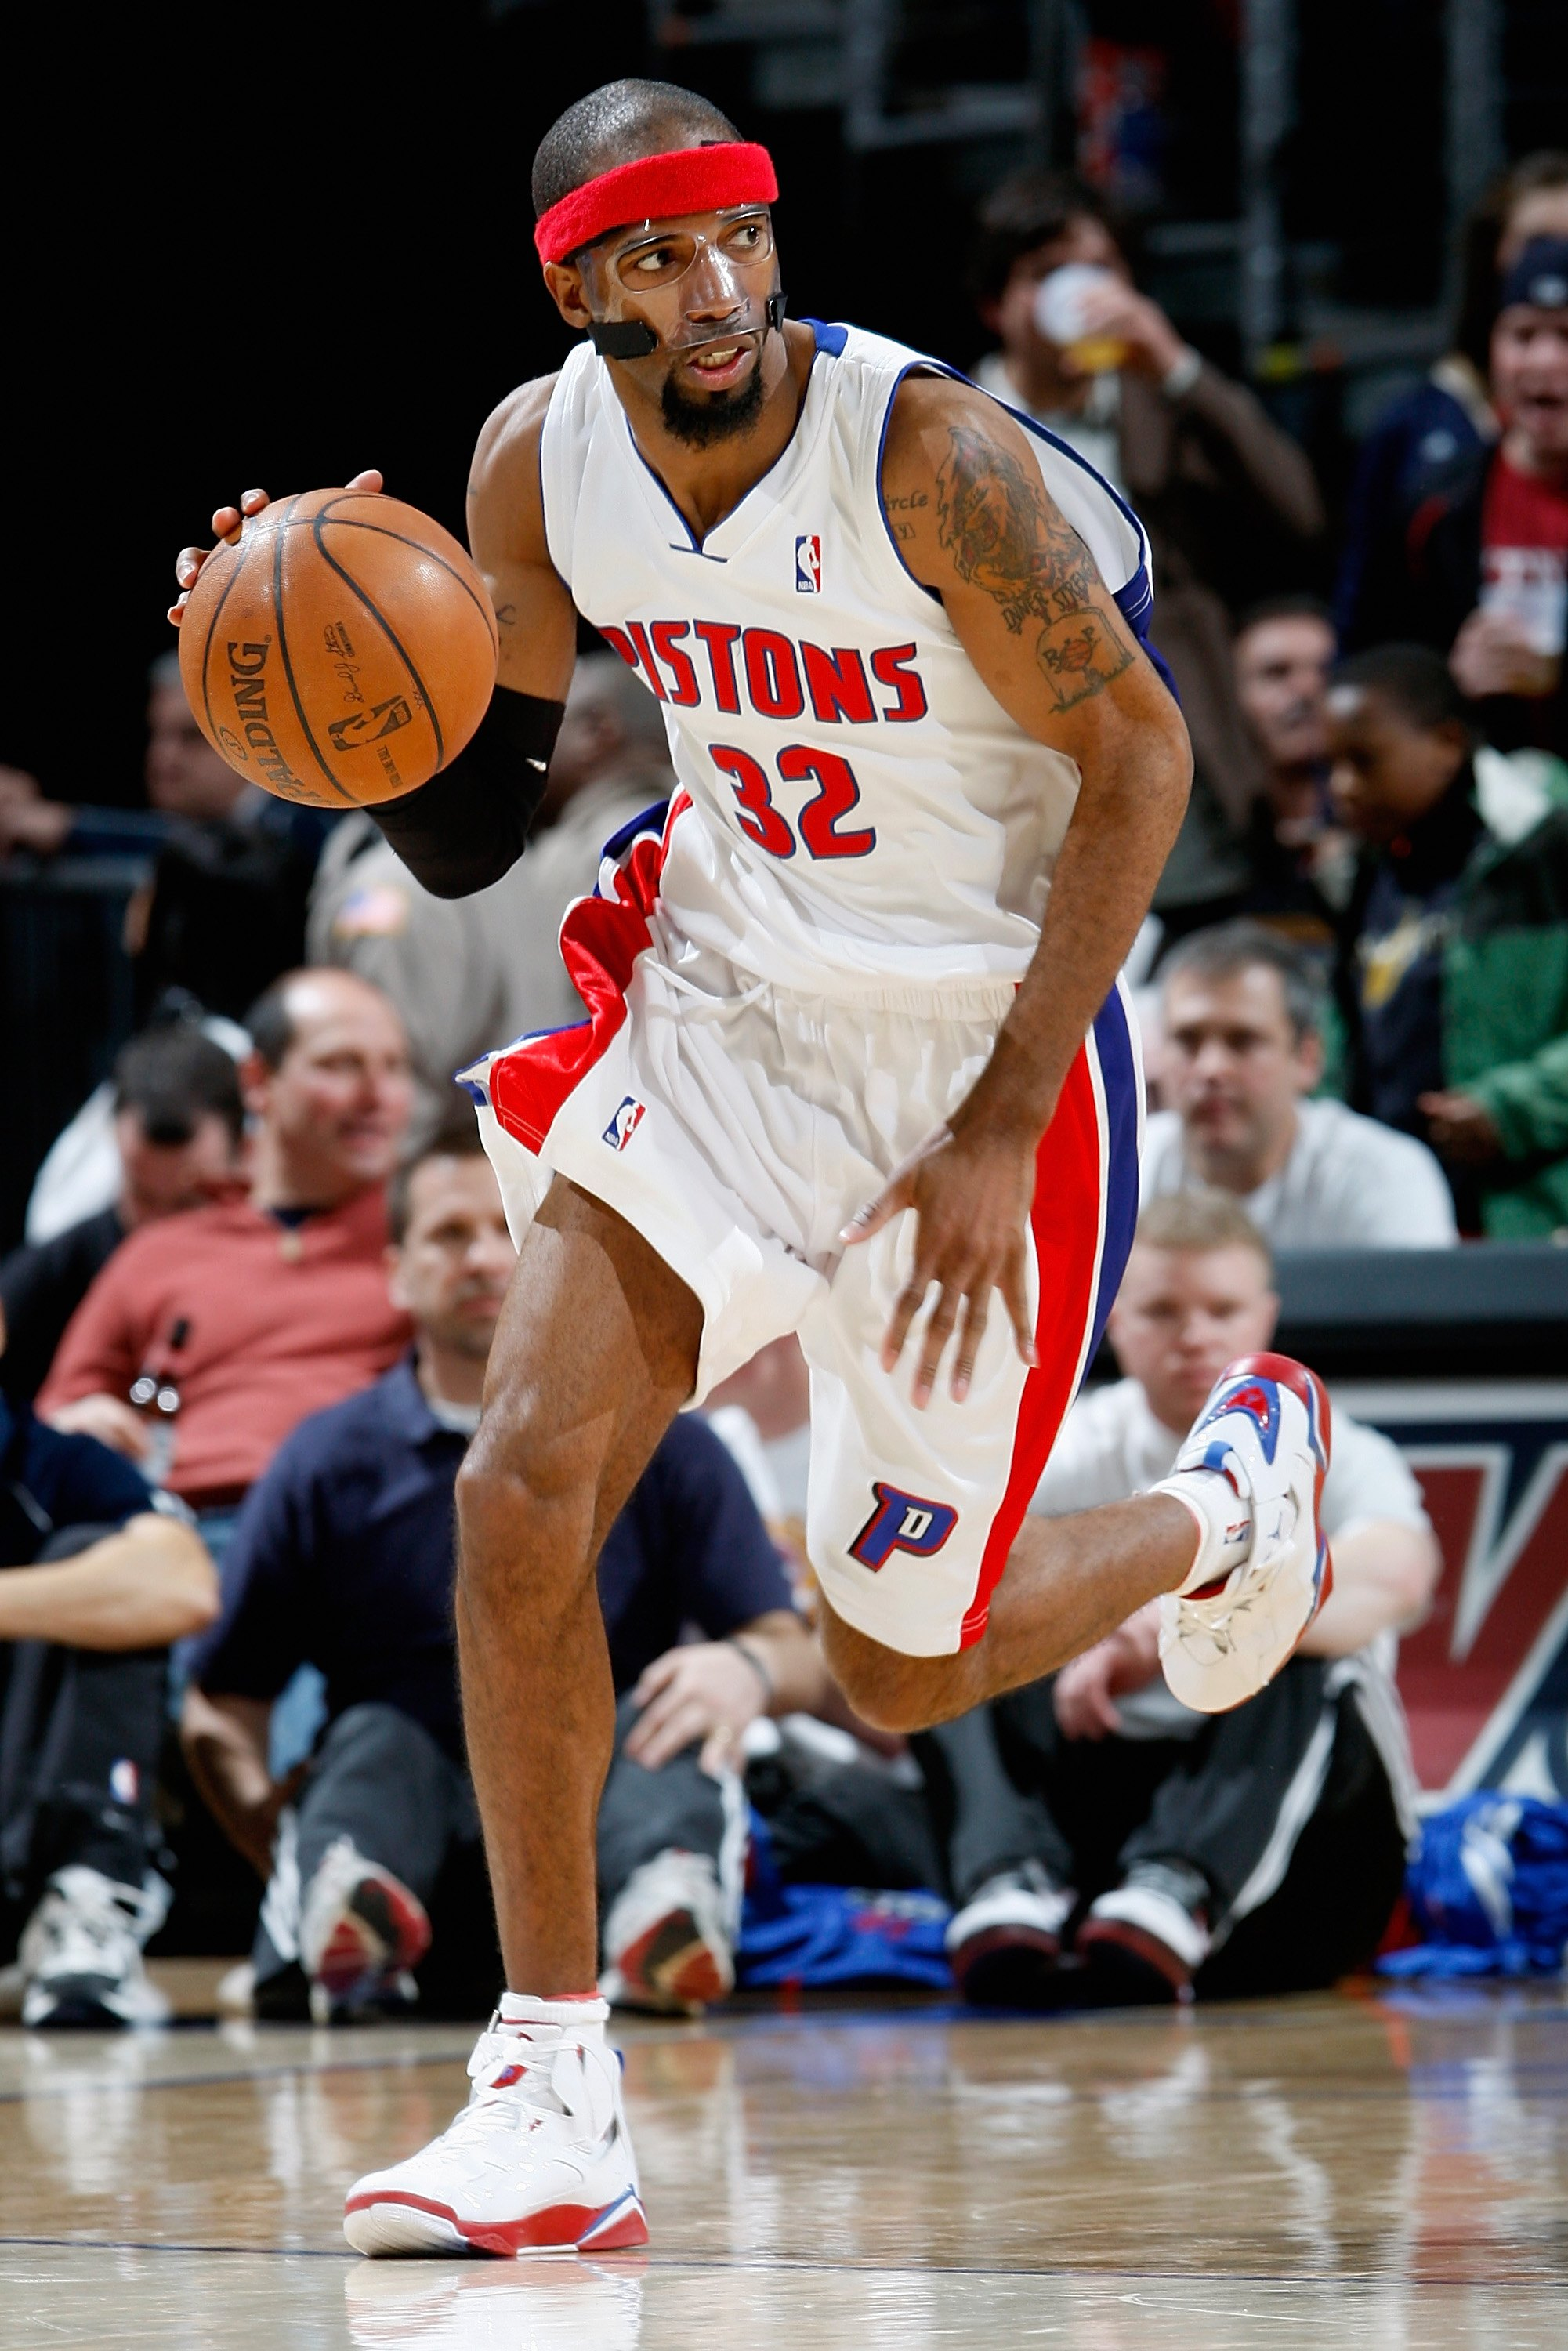 CLEVELAND - FEBRUARY 22:  Richard Hamilton #32 of the Detroit Pistons drives the ball up court during the game against the Cleveland Cavaliers on February 22, 2009 at the Quicken Loans Arena in Cleveland, Ohio.  The Cavaliers won 99-78.  NOTE TO USER: Use